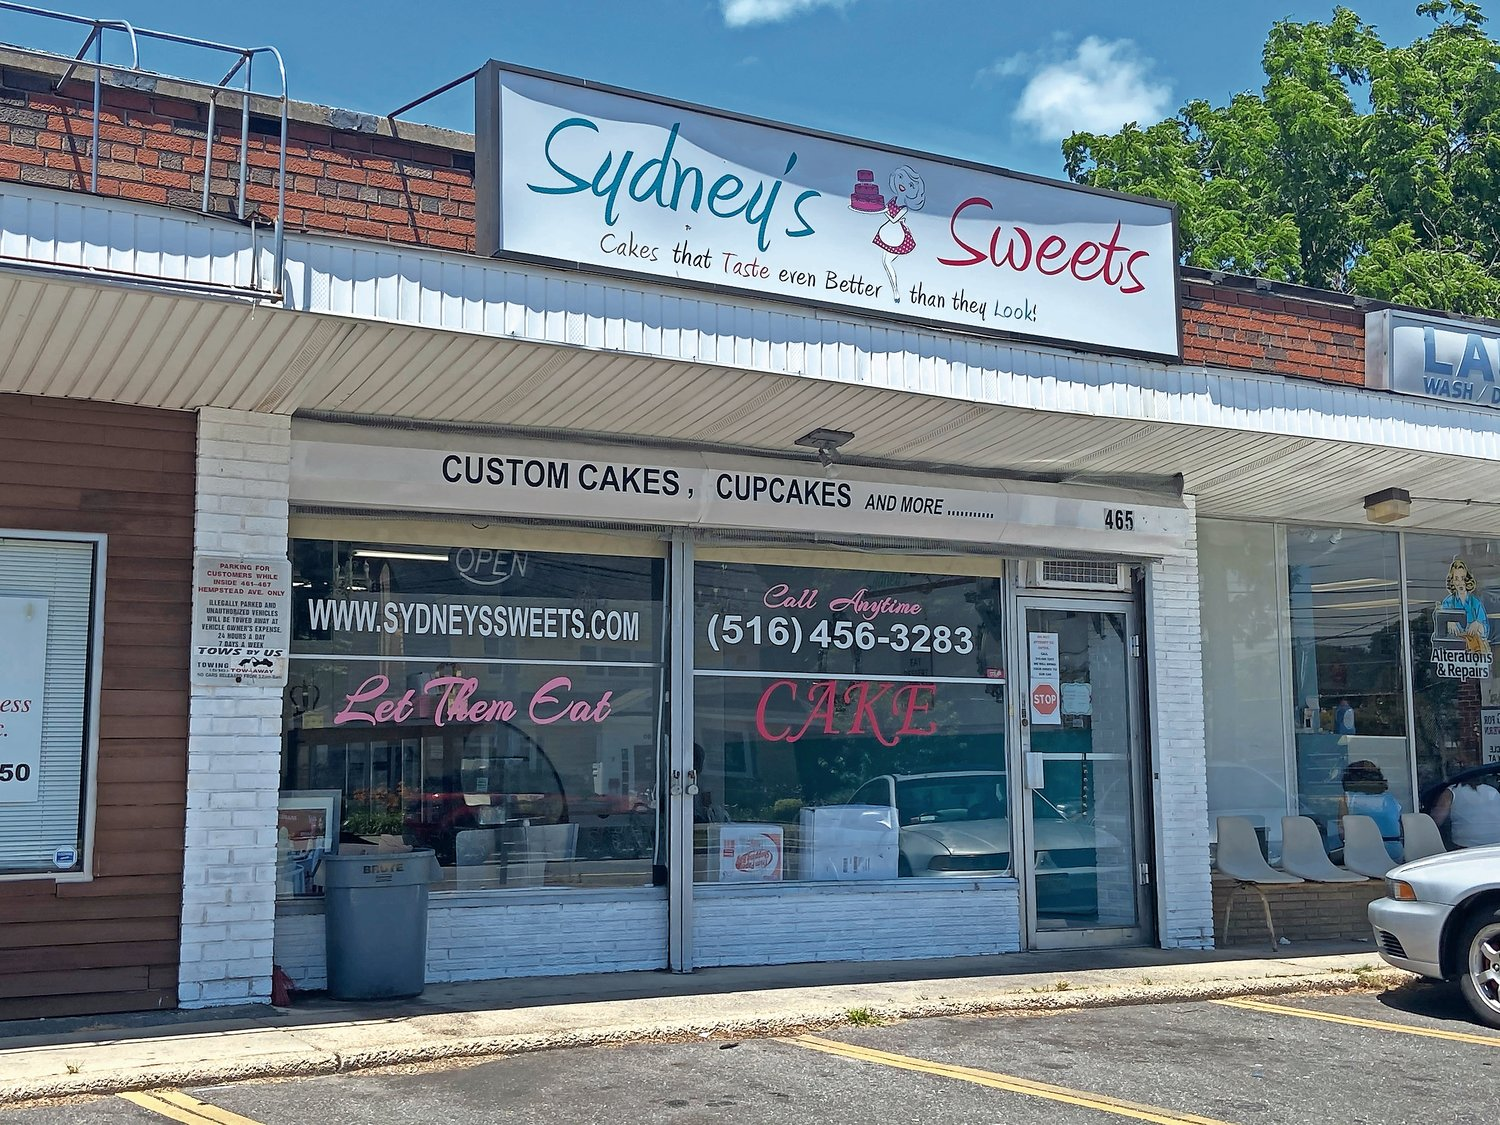 Sydney's Sweets has also made adjustments to their business since the pandemic.